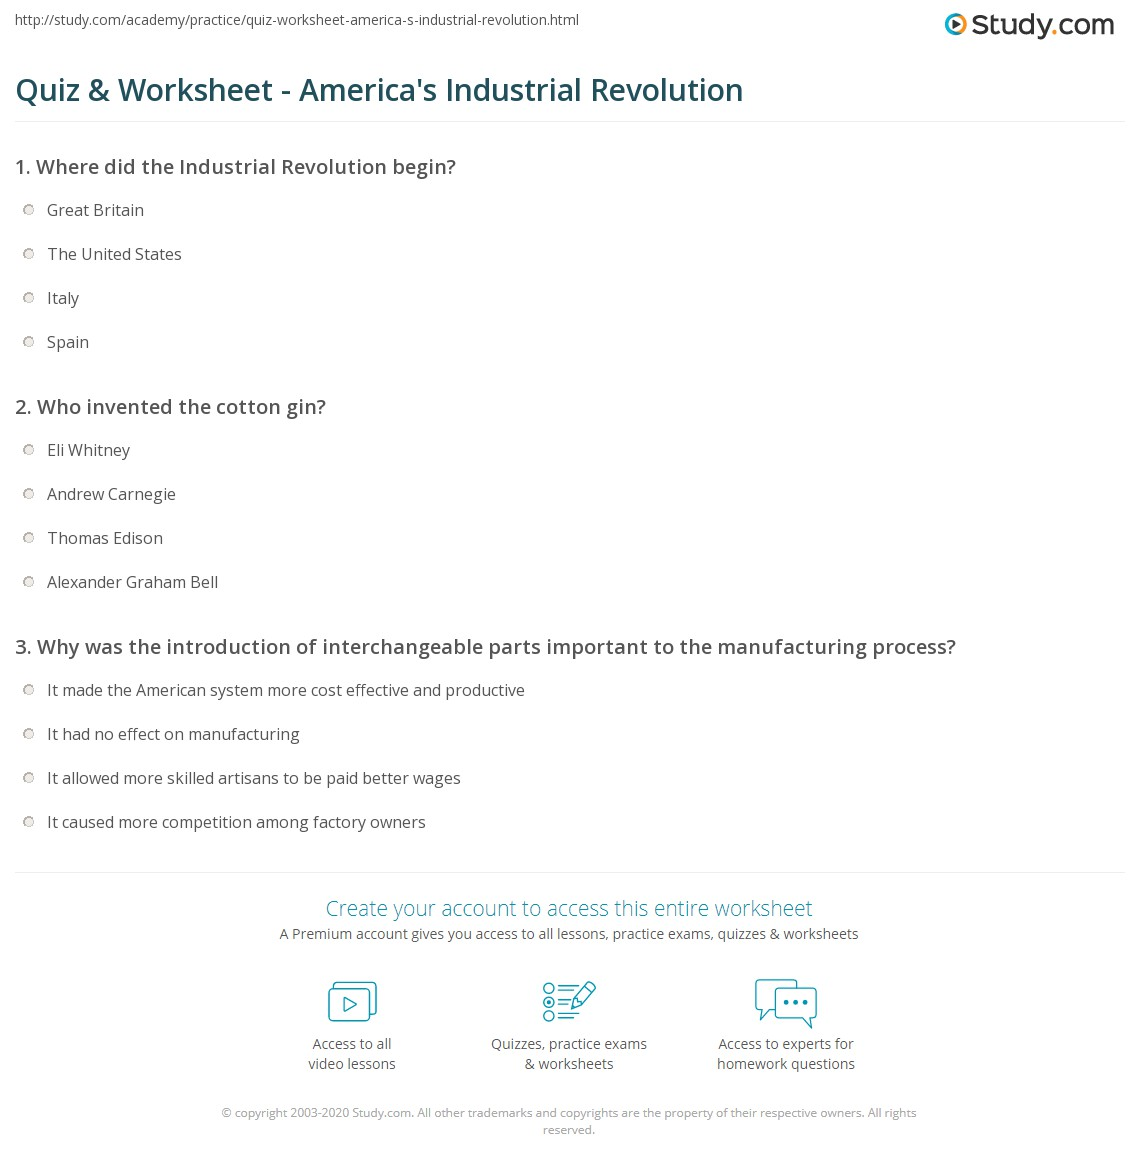 Quiz & Worksheet - America's Industrial Revolution | Study.com